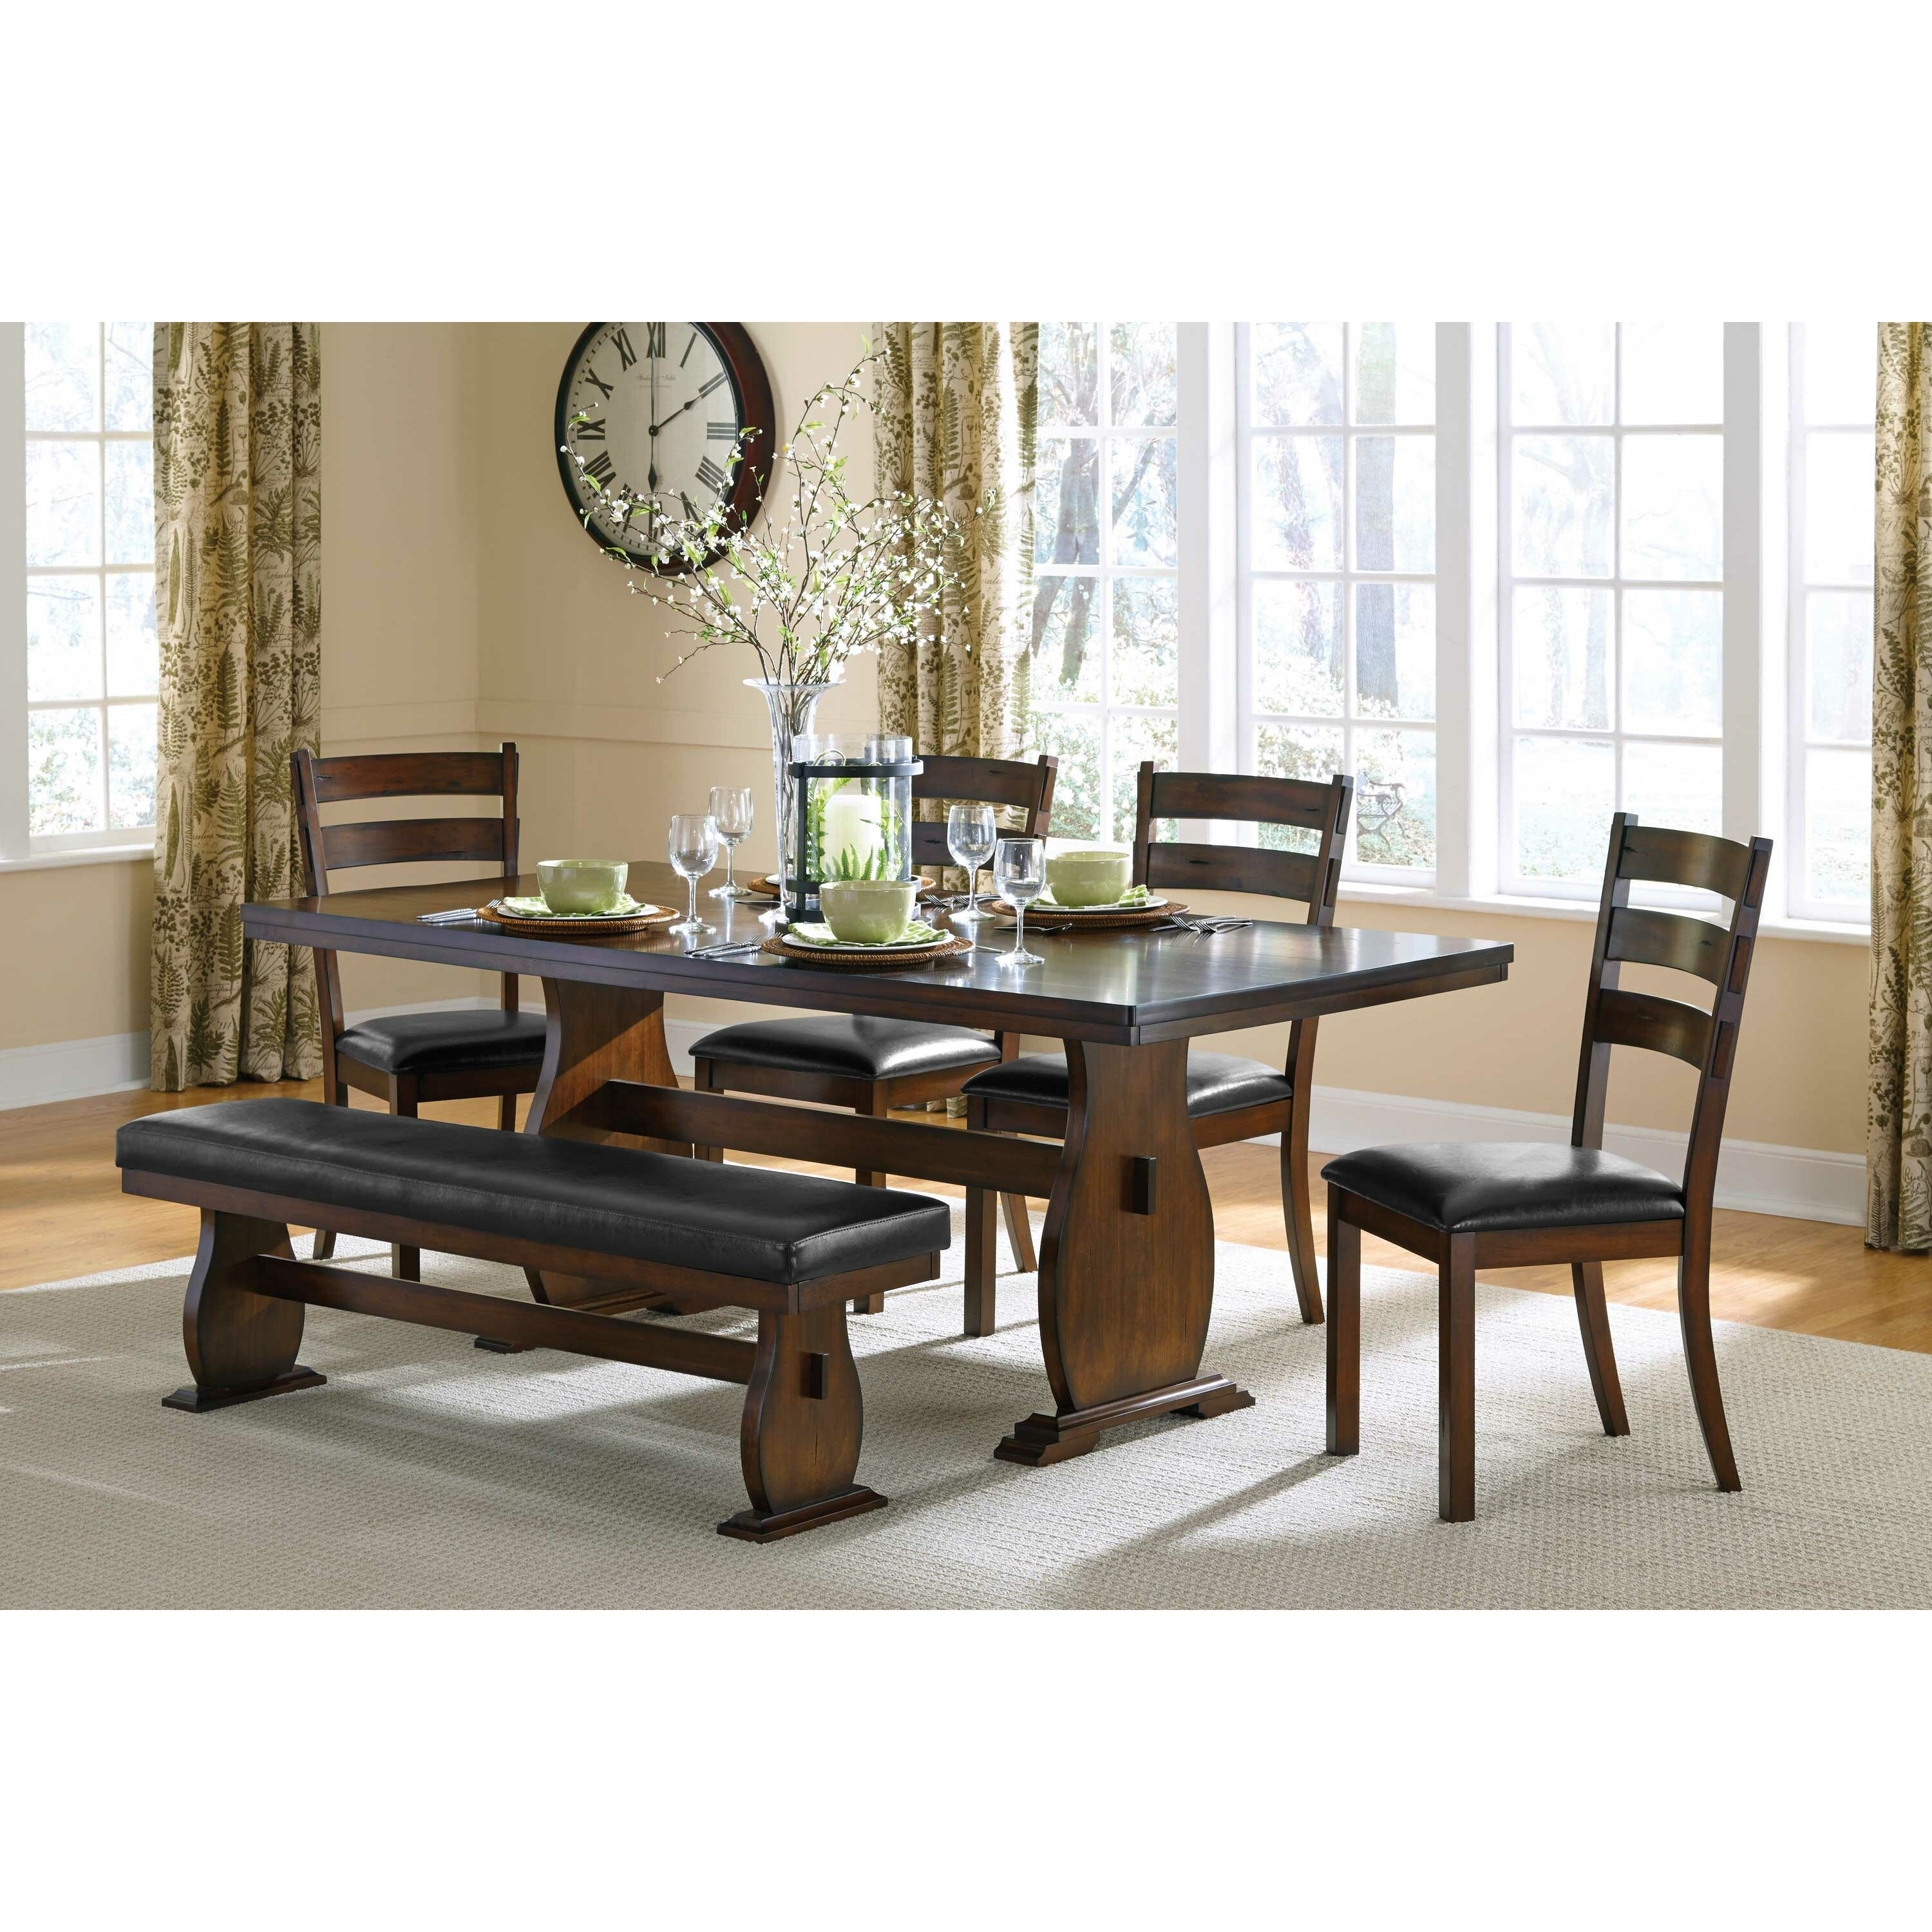 Wildon home dining table for Wildon home dining